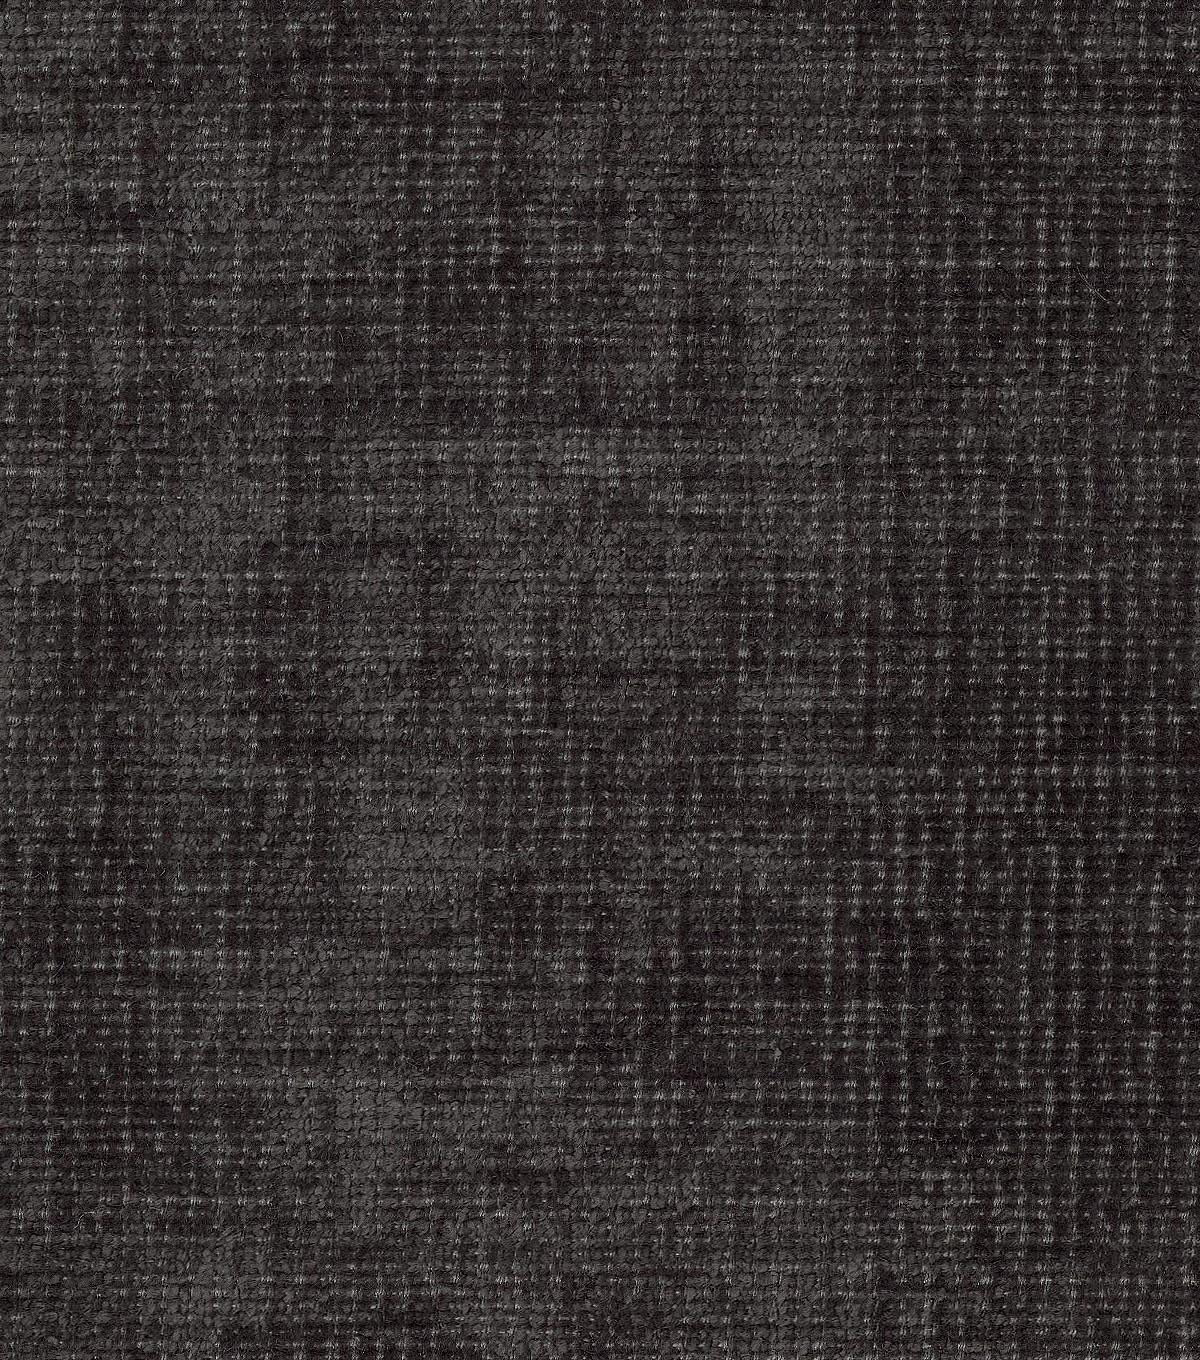 Genevieve Gorder Upholstery Fabric 54\u0027\u0027-Coal Best Friend